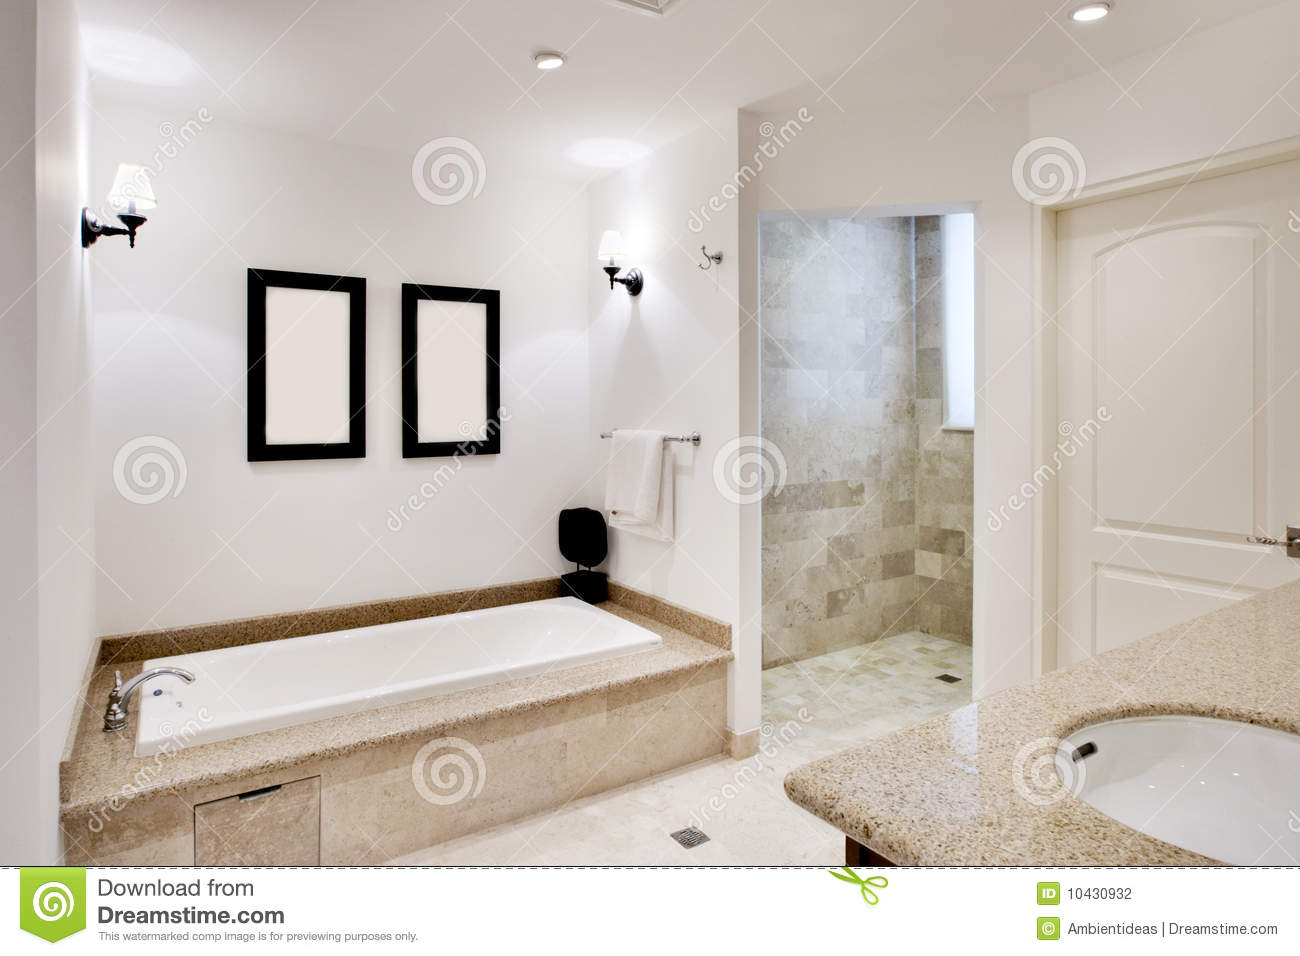 badezimmer mit wanne und dusche stockfotografie bild 10430932. Black Bedroom Furniture Sets. Home Design Ideas